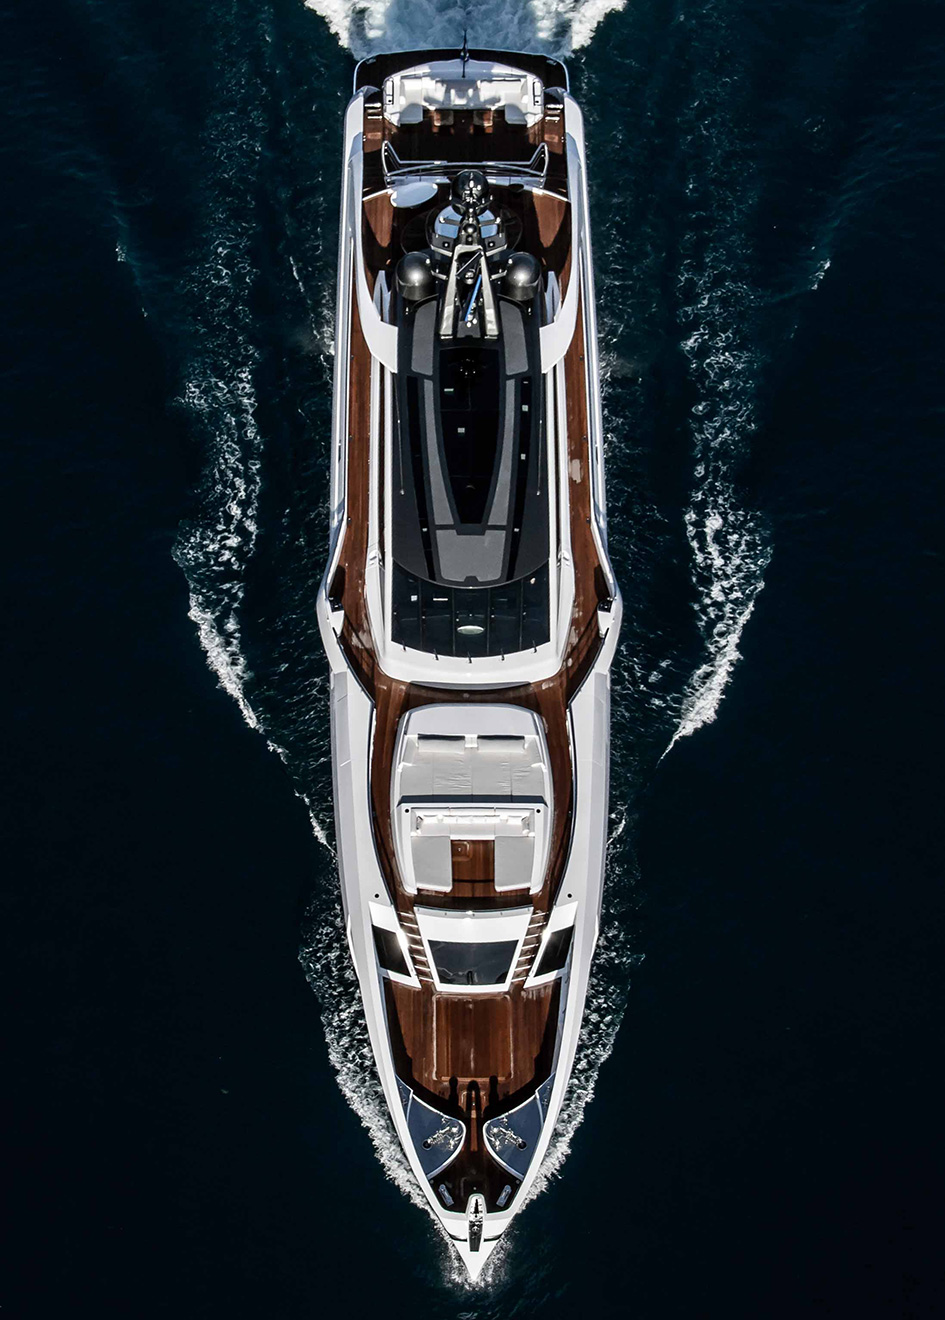 aerial-view-of-the-rossinavi-superyacht-aurora-credit-tom-van-oossanen